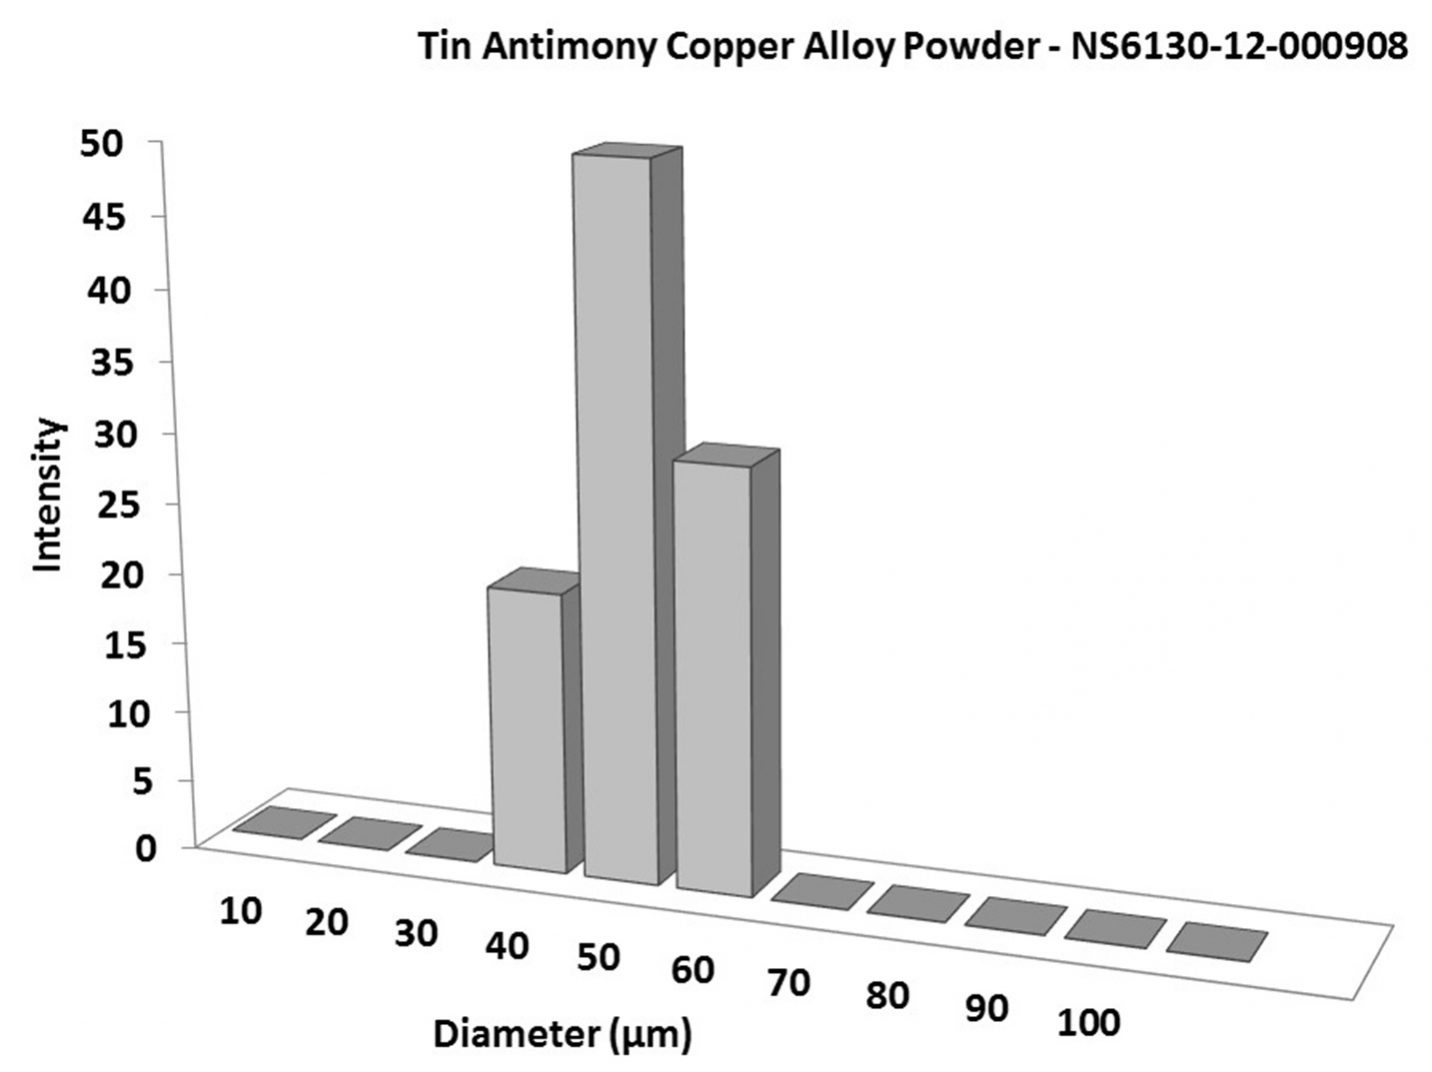 Tin Antimony Copper Alloy